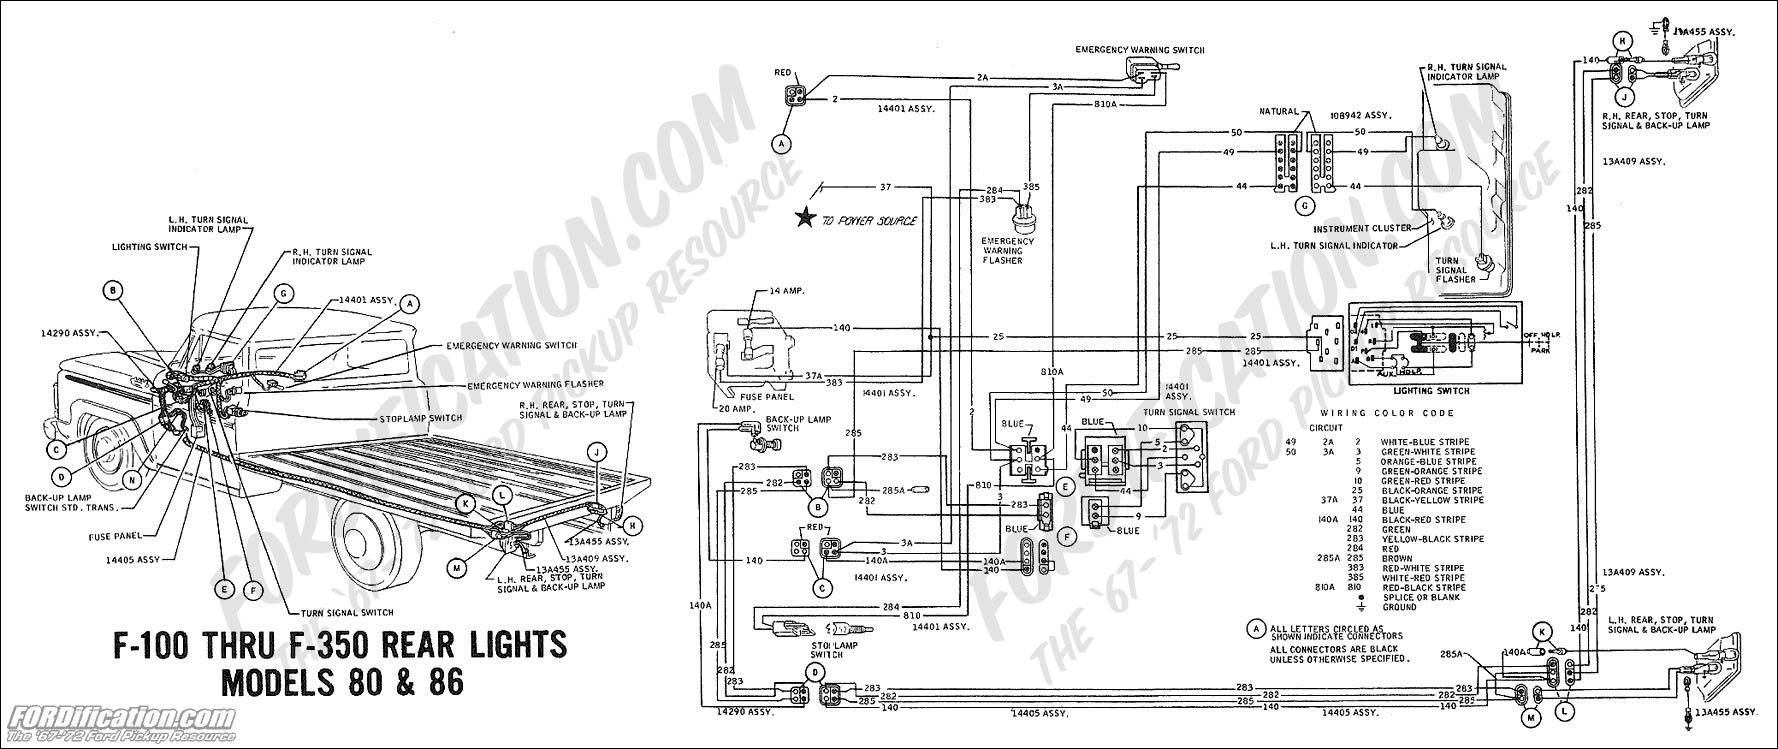 1974 ford bronco wiring diagram  fordificationcom